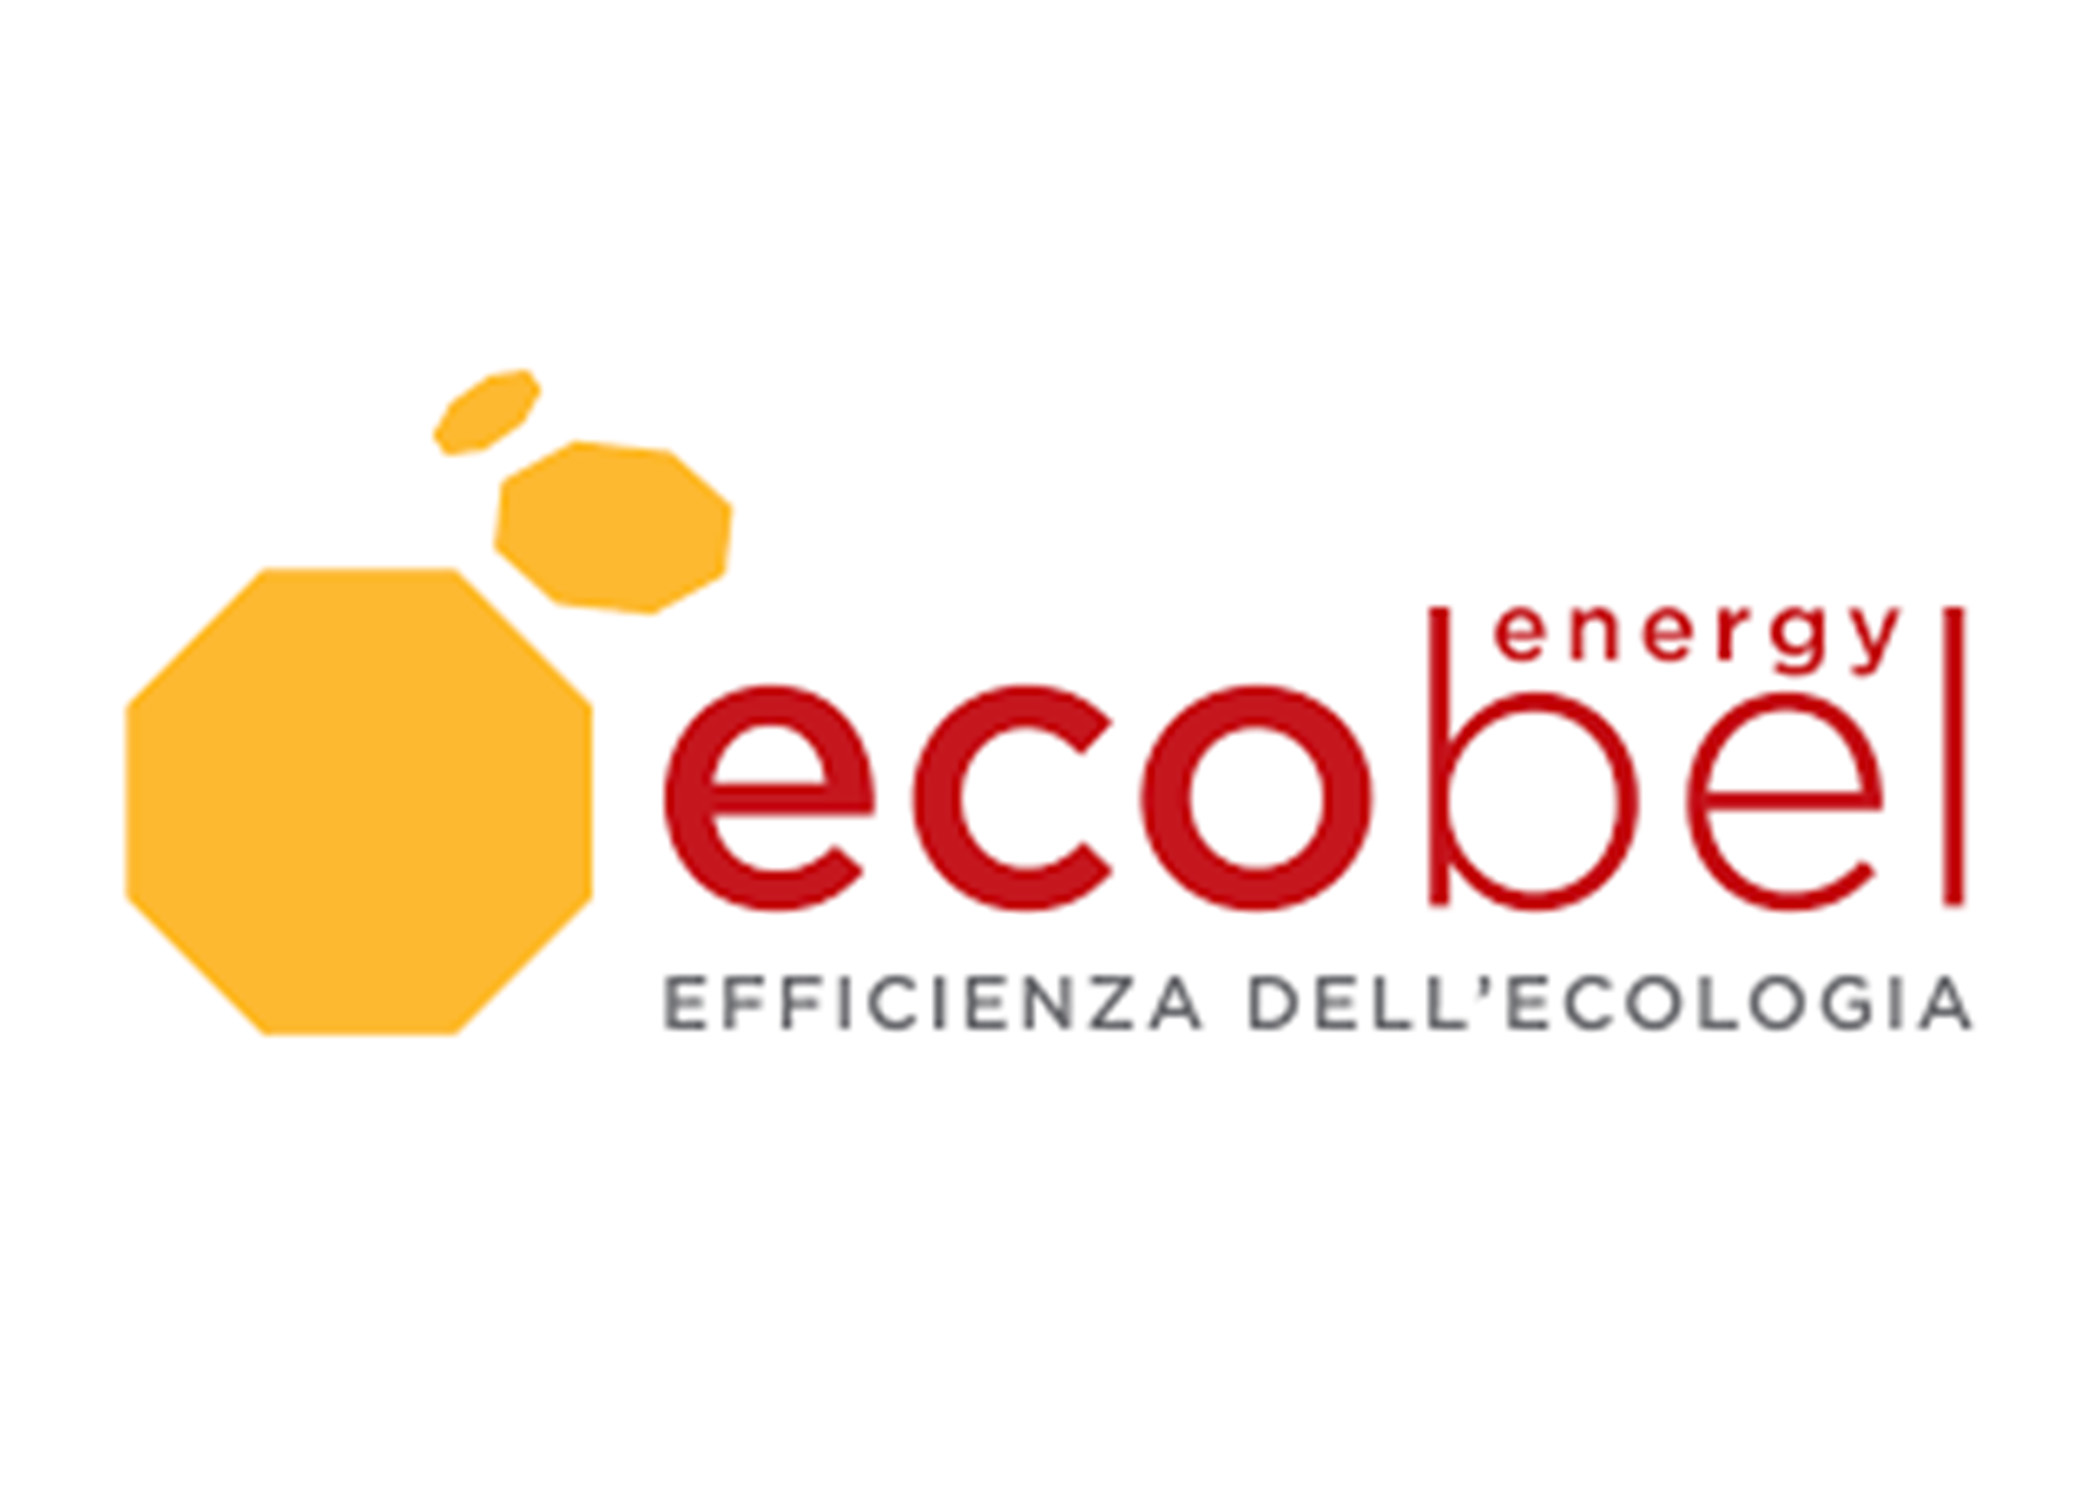 Ecobel Energy